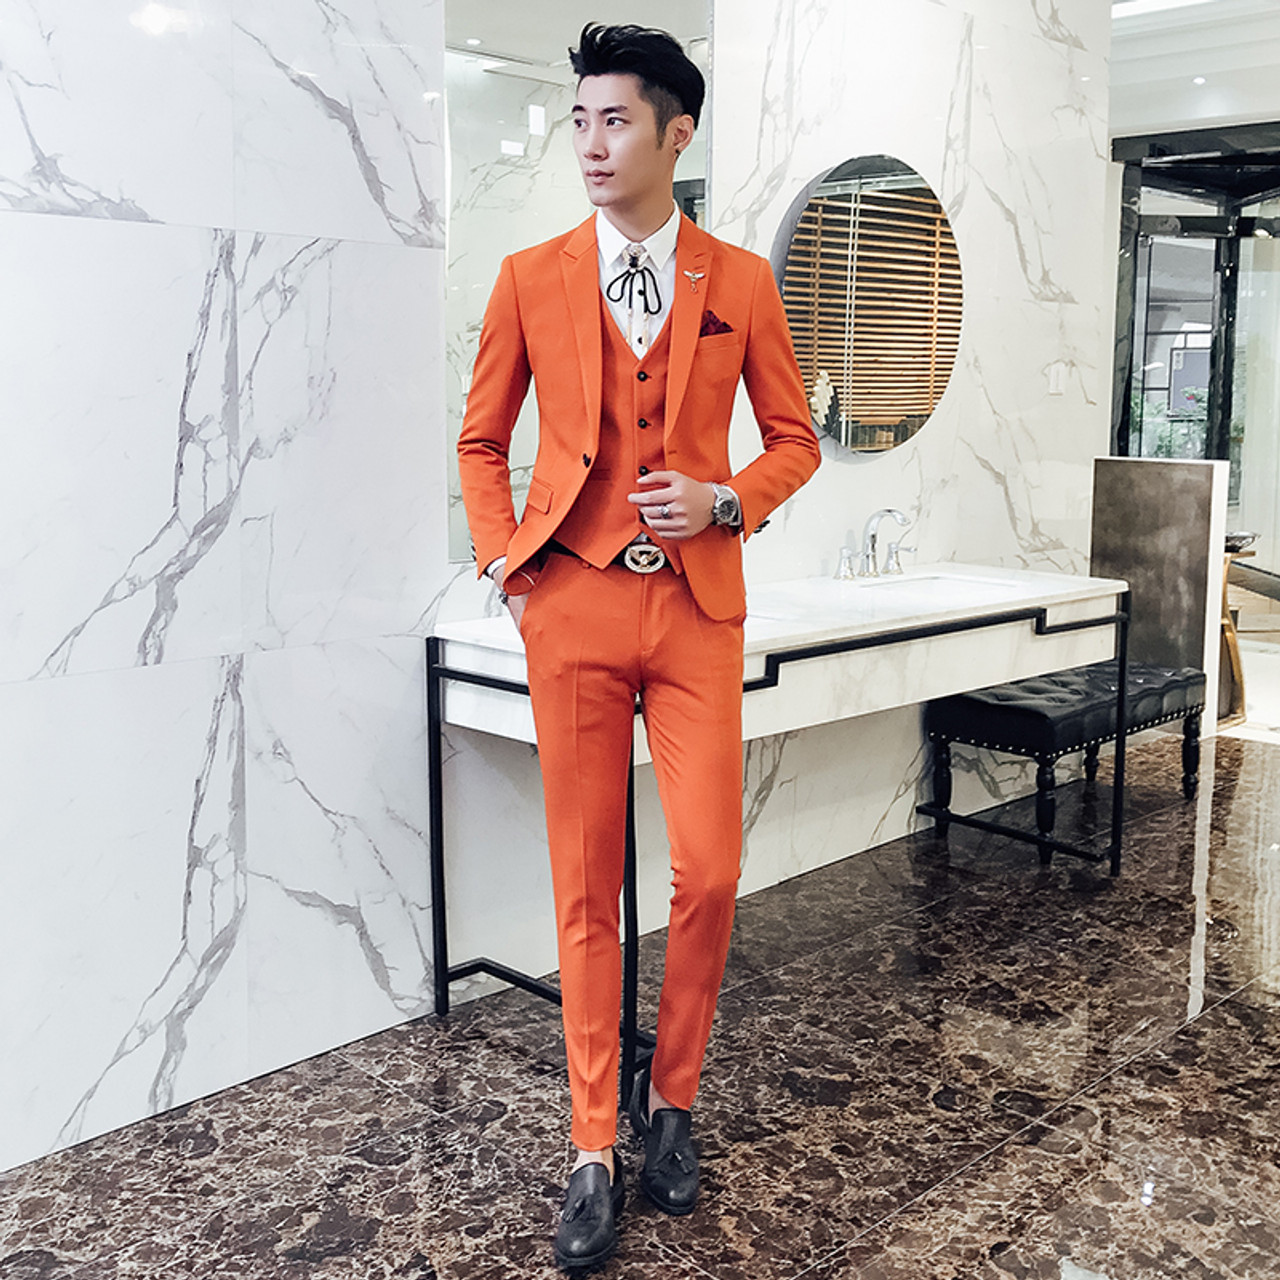 Red Prom Suit 2018 New Evening Man Dress Wedding Suit Male Black Orange White Blue Costume Homme Ternos Slim Masculino 3 Pieces Onshopdeals Com